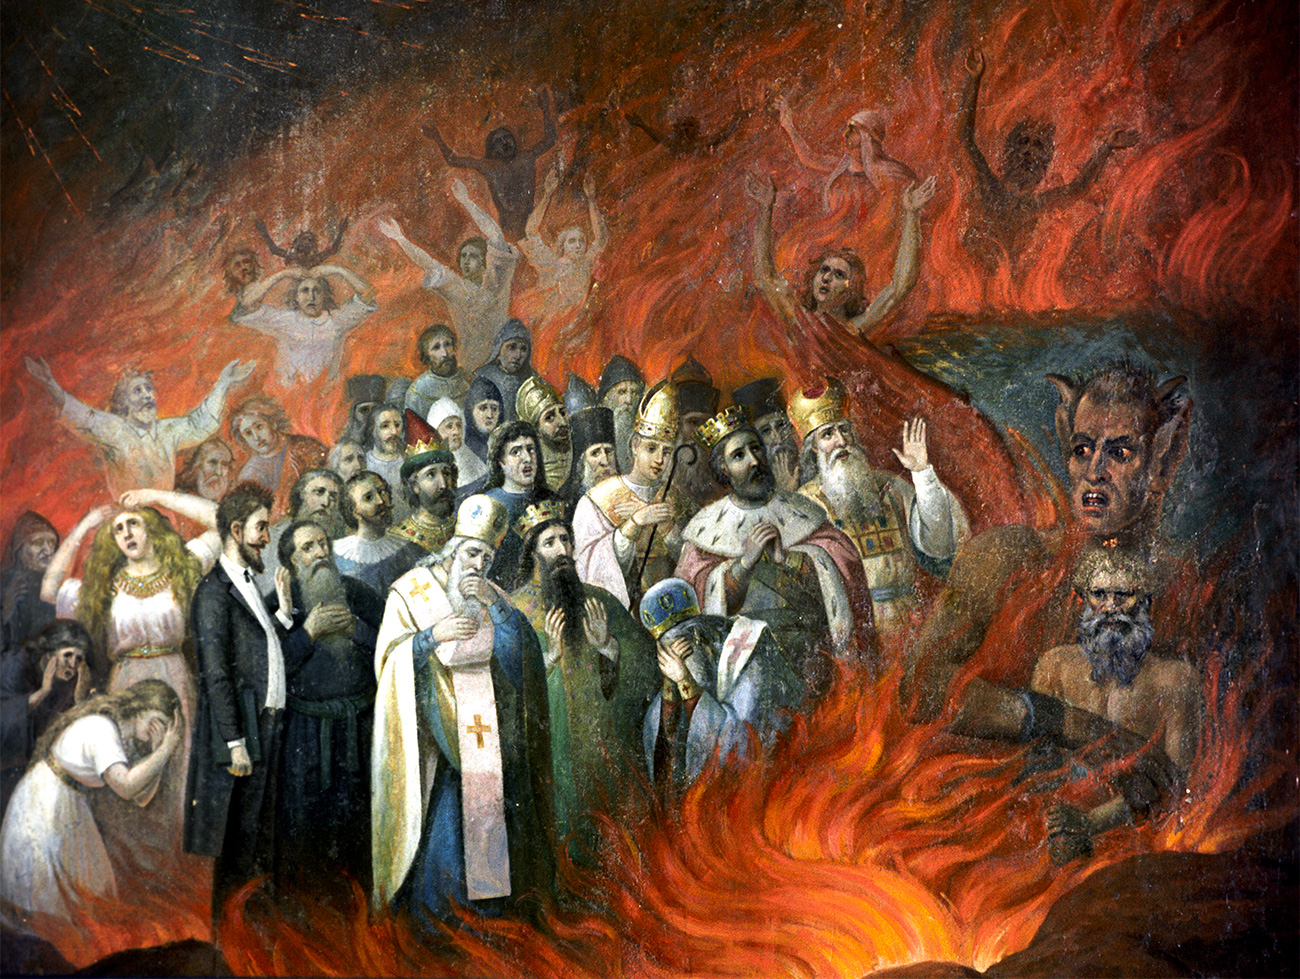 'Leo Tolstoy in Hell' Fragment of the fresco 'The Omen' by church artist M. Andryushin, 1883. The Museum of Religion and Atheism History of the Academy of Sciences of the USSR. Leningrad (St. Petersburg currently). Source: Balabanov/RIA Novosti